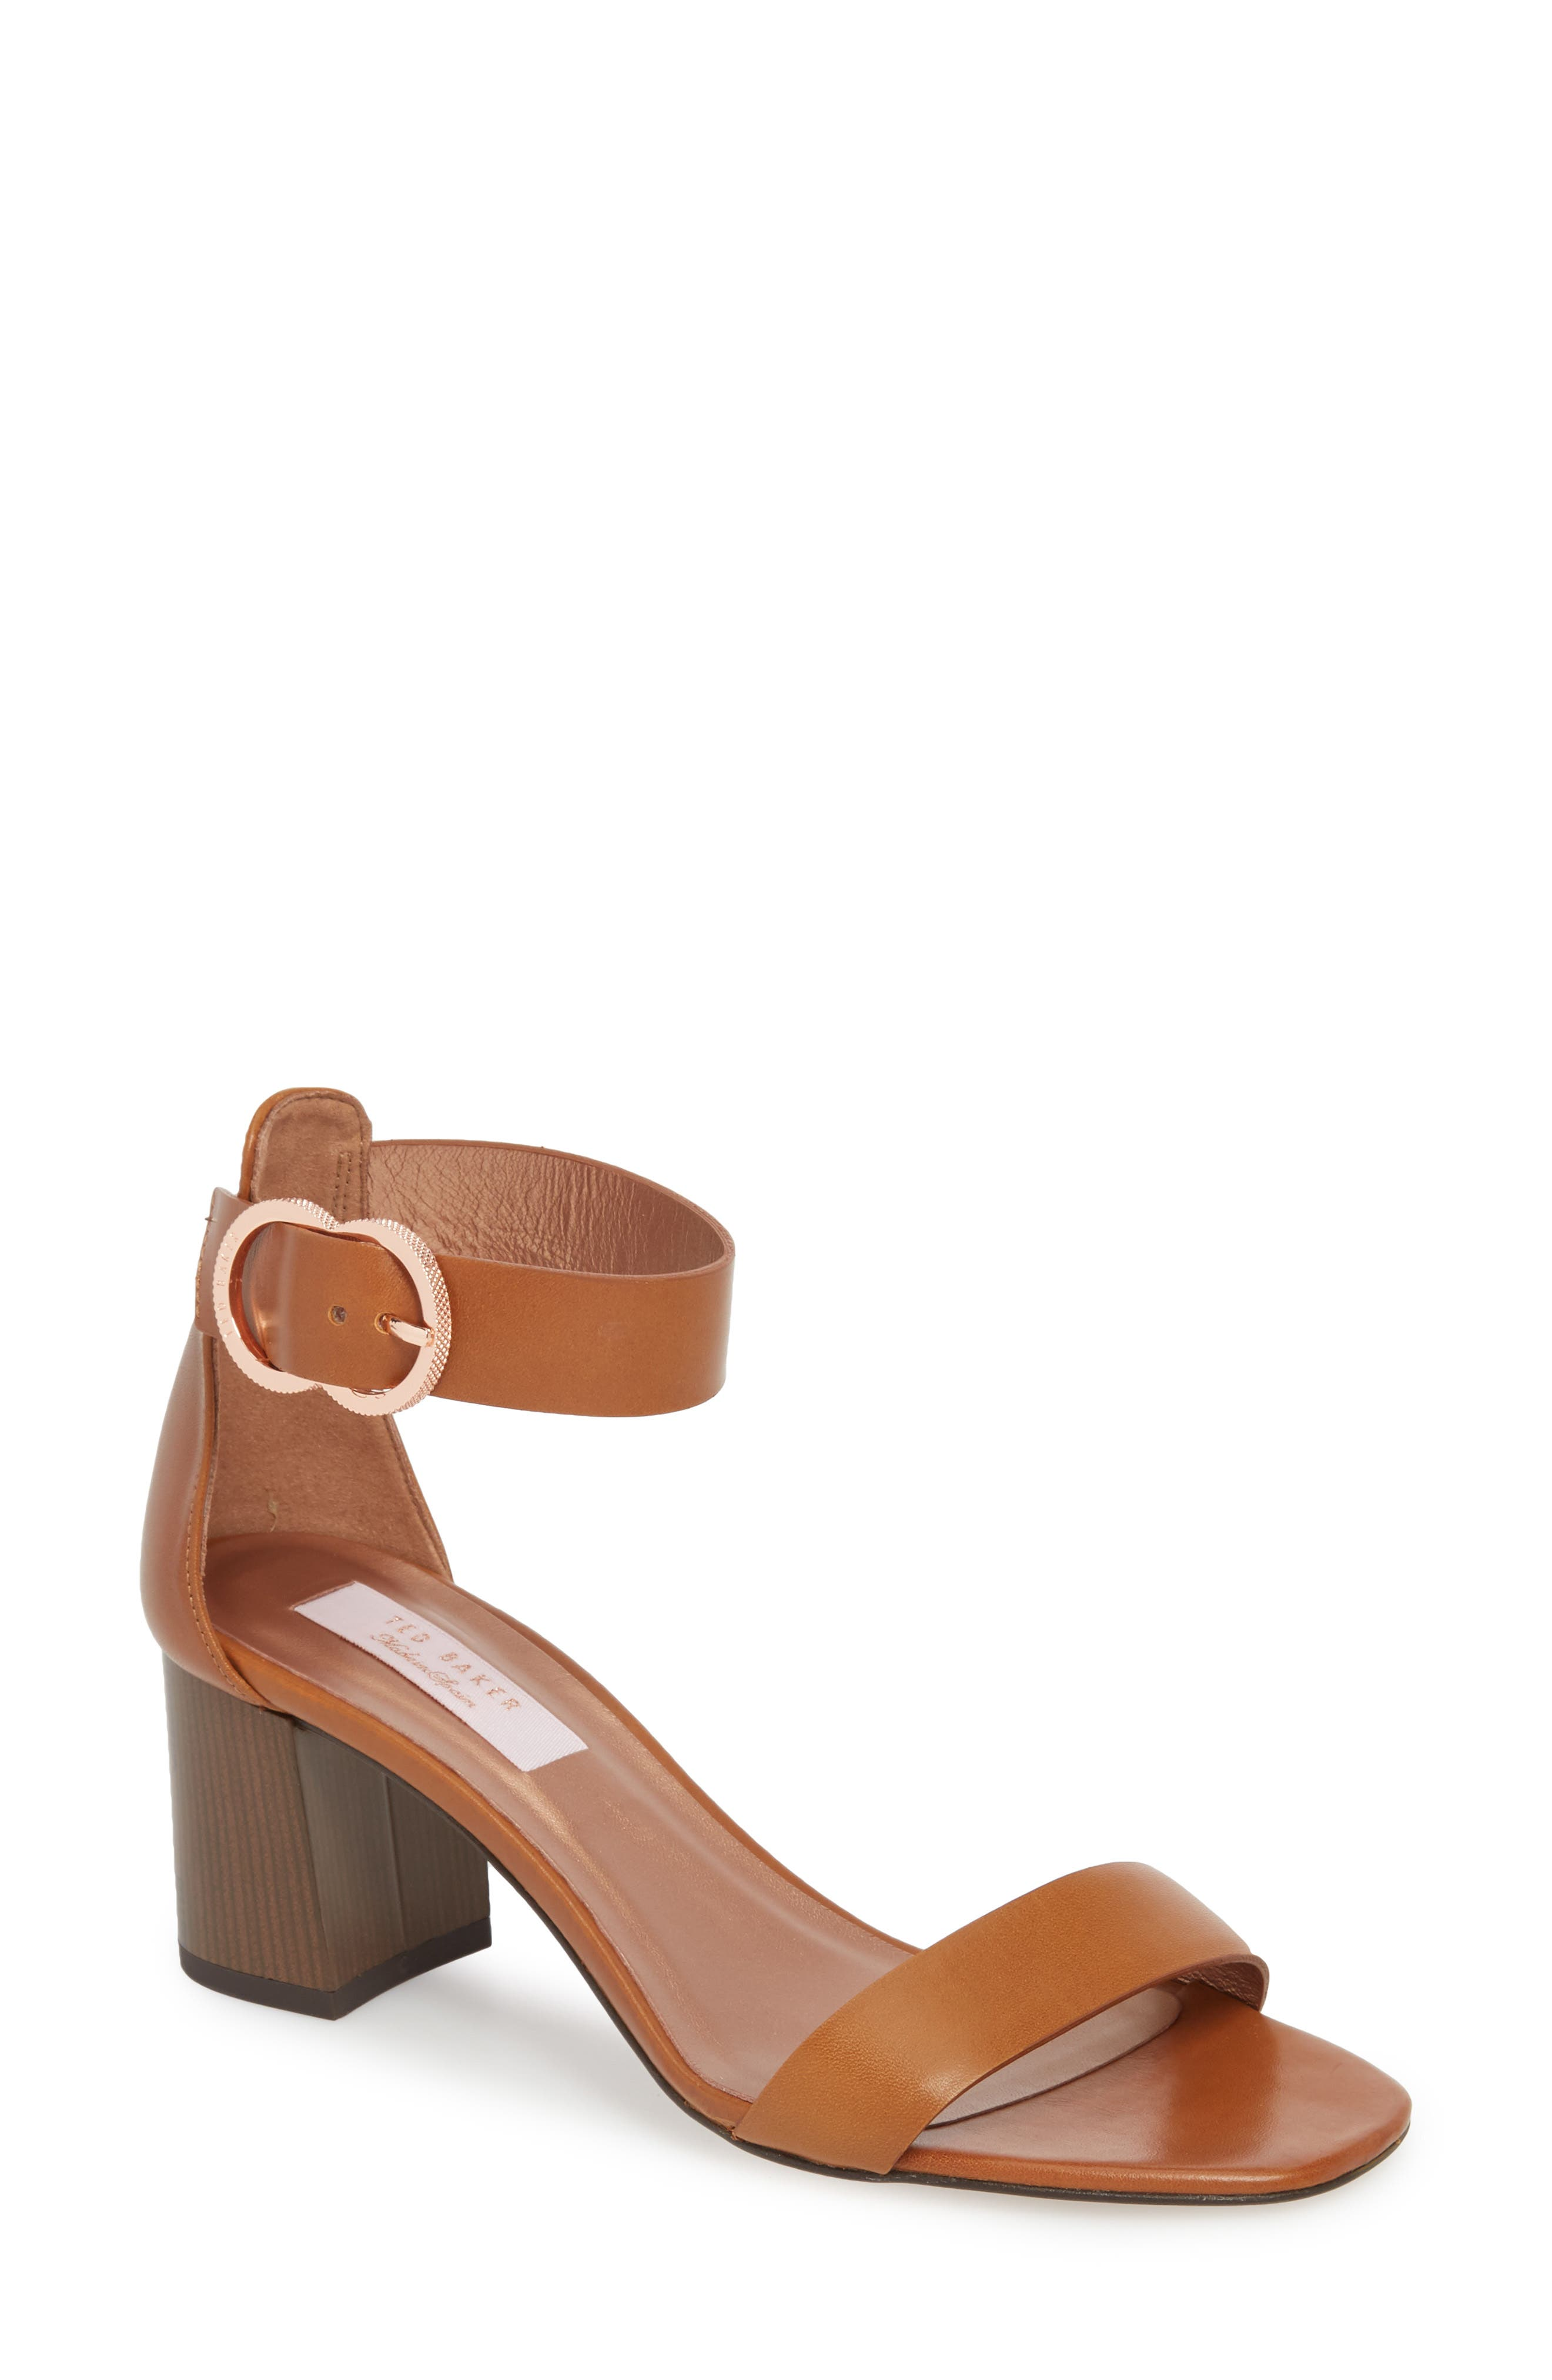 Qarvas Sandal,                         Main,                         color, 200